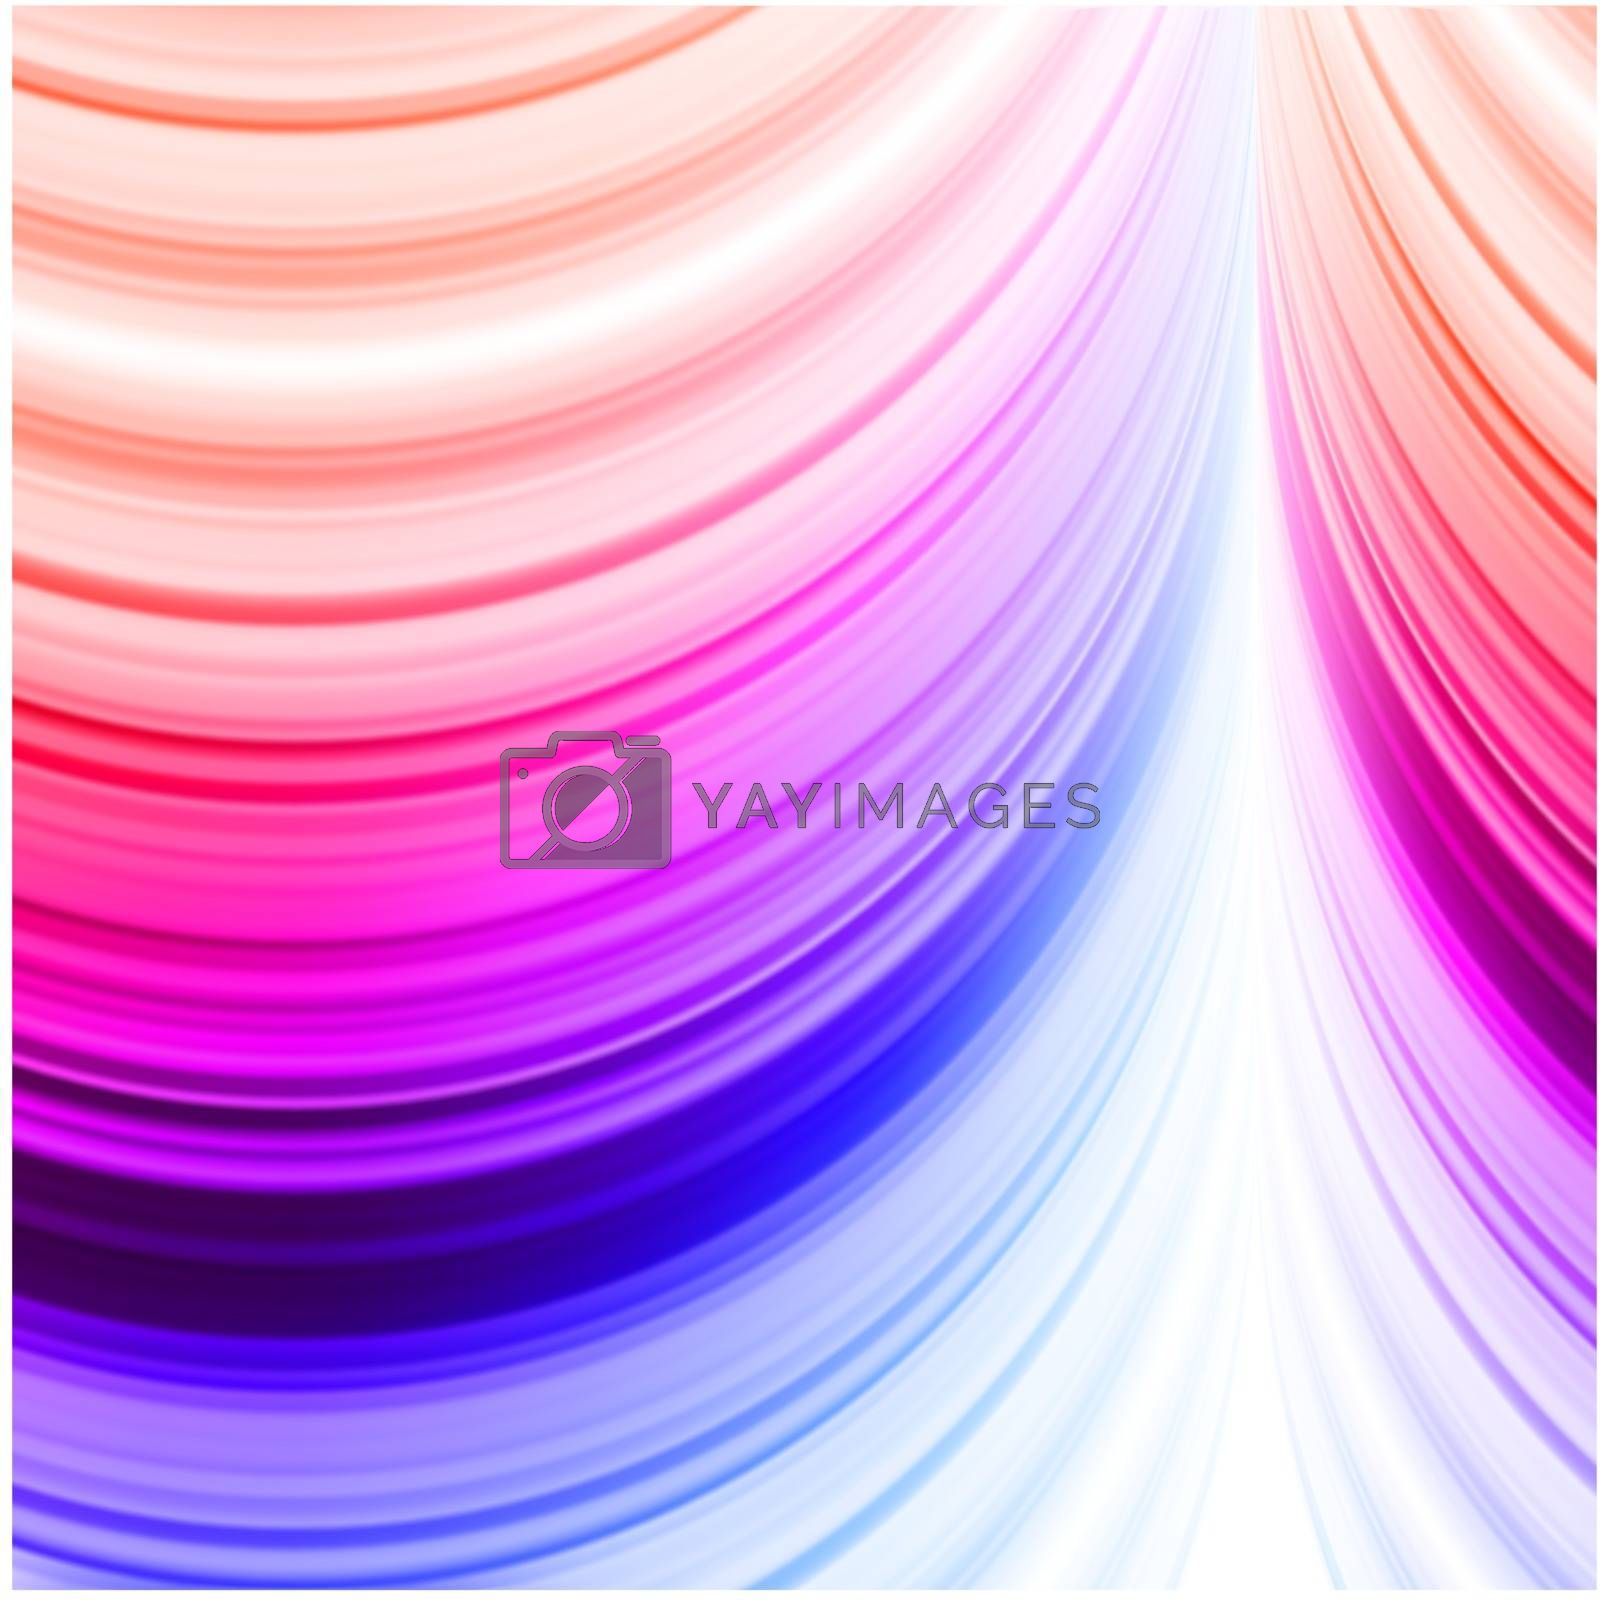 Royalty free image of Fully editable colorful abstract background. EPS 8 by Petrov_Vladimir